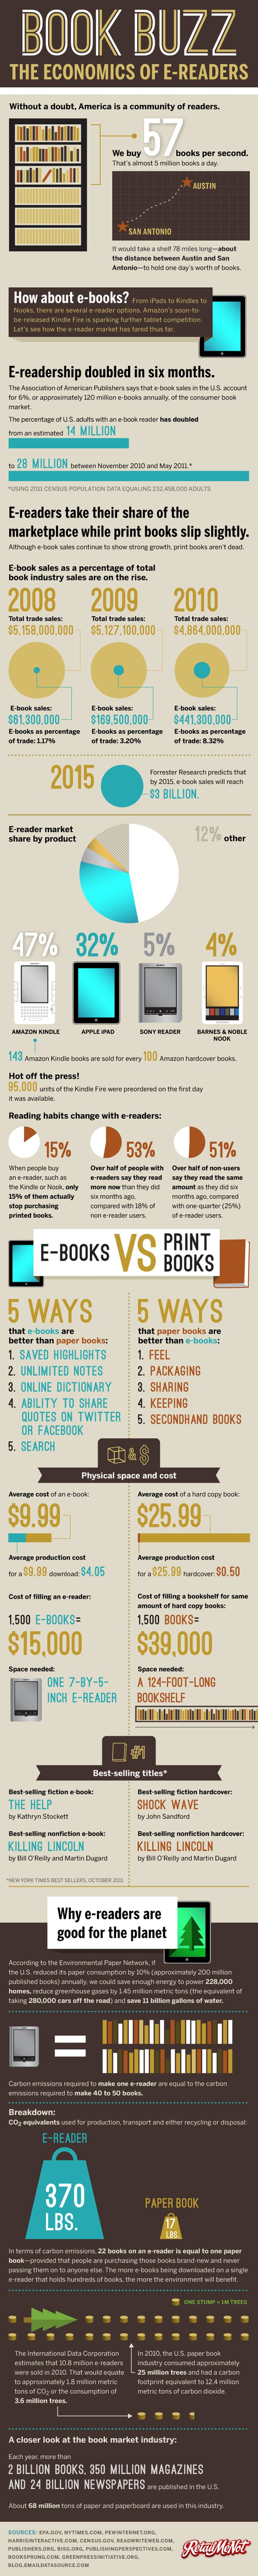 The 16 best ebook stats images on pinterest reading infographic how do e books compare to print books infographic fandeluxe Images